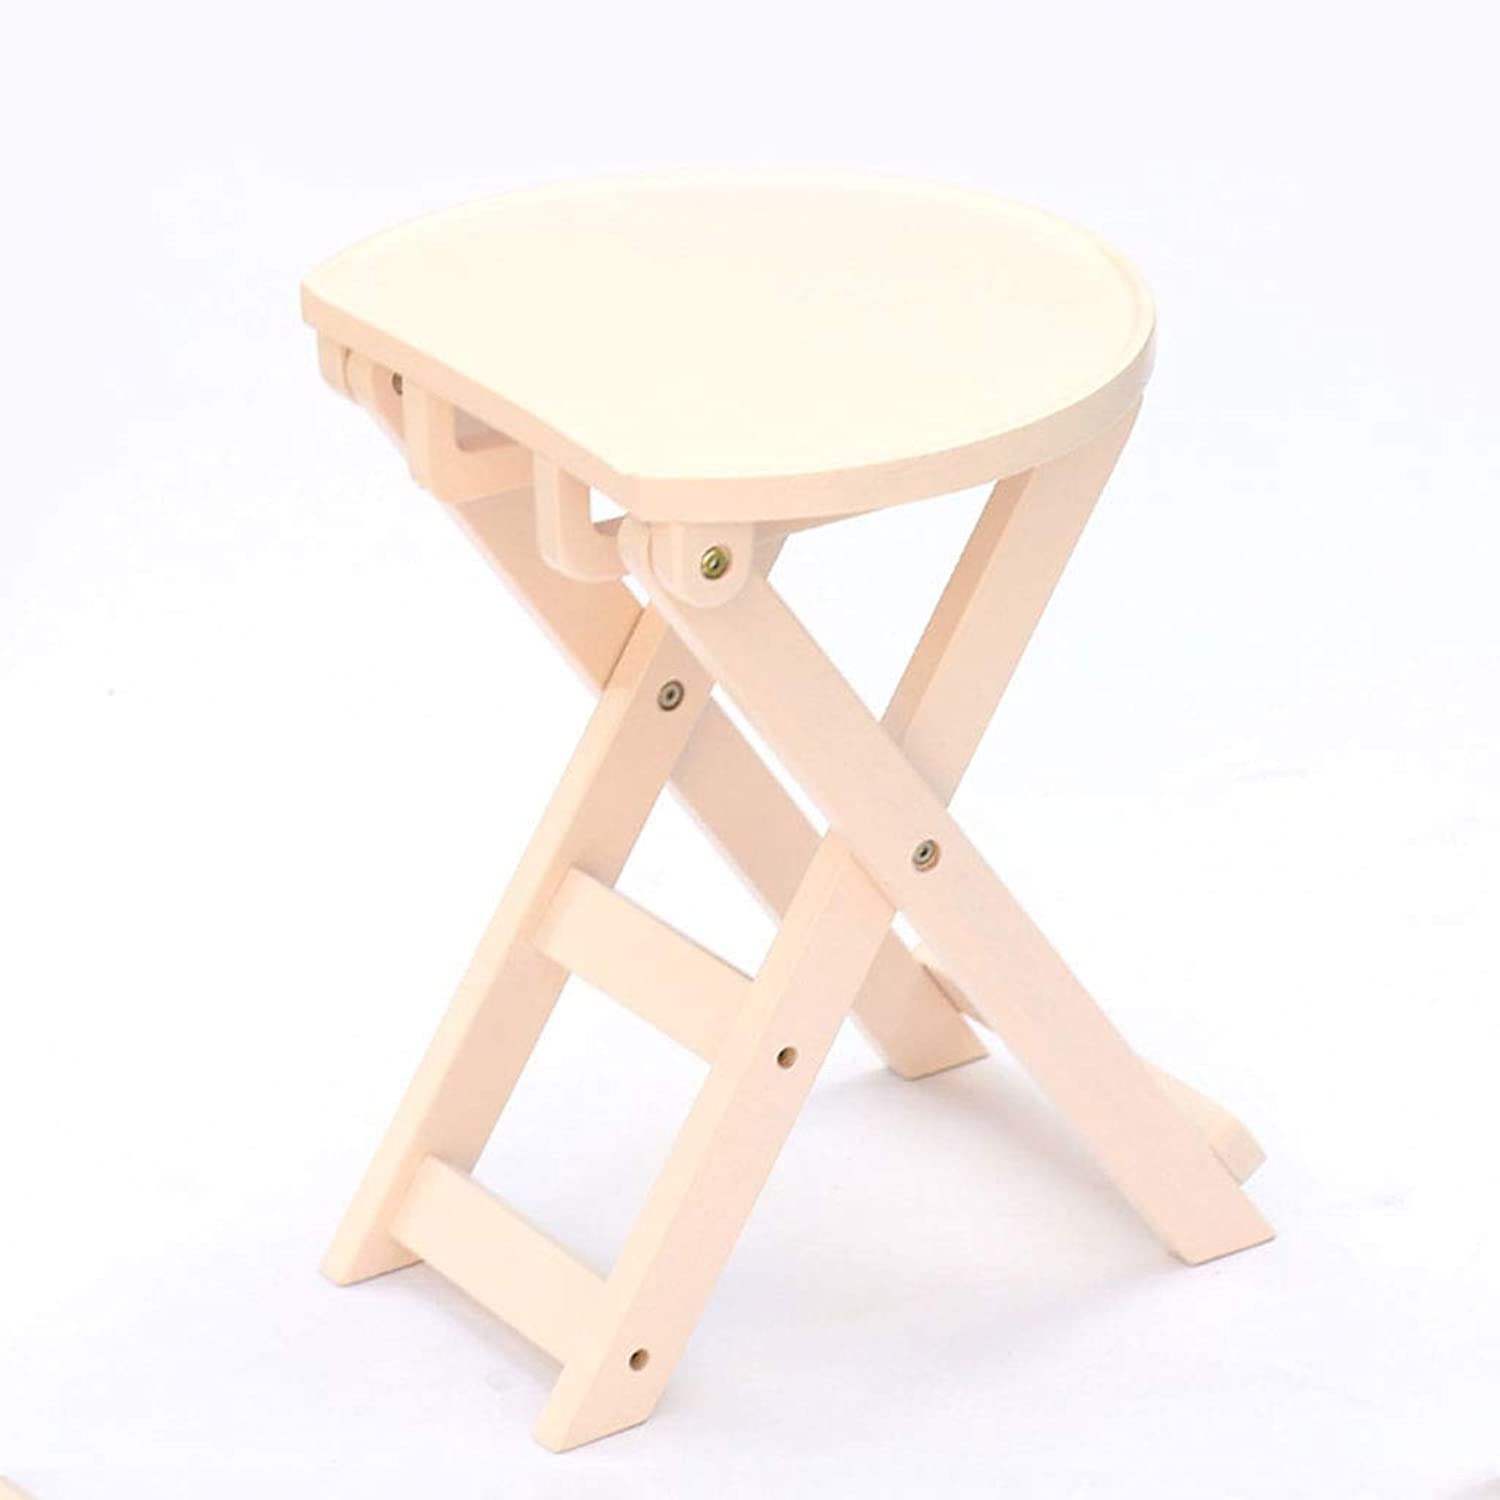 HY Stool Rubber Wood Folding Portable Stool Home Living Small Bench (color   White, Size   L36CMXW24.5CMXH43CM)